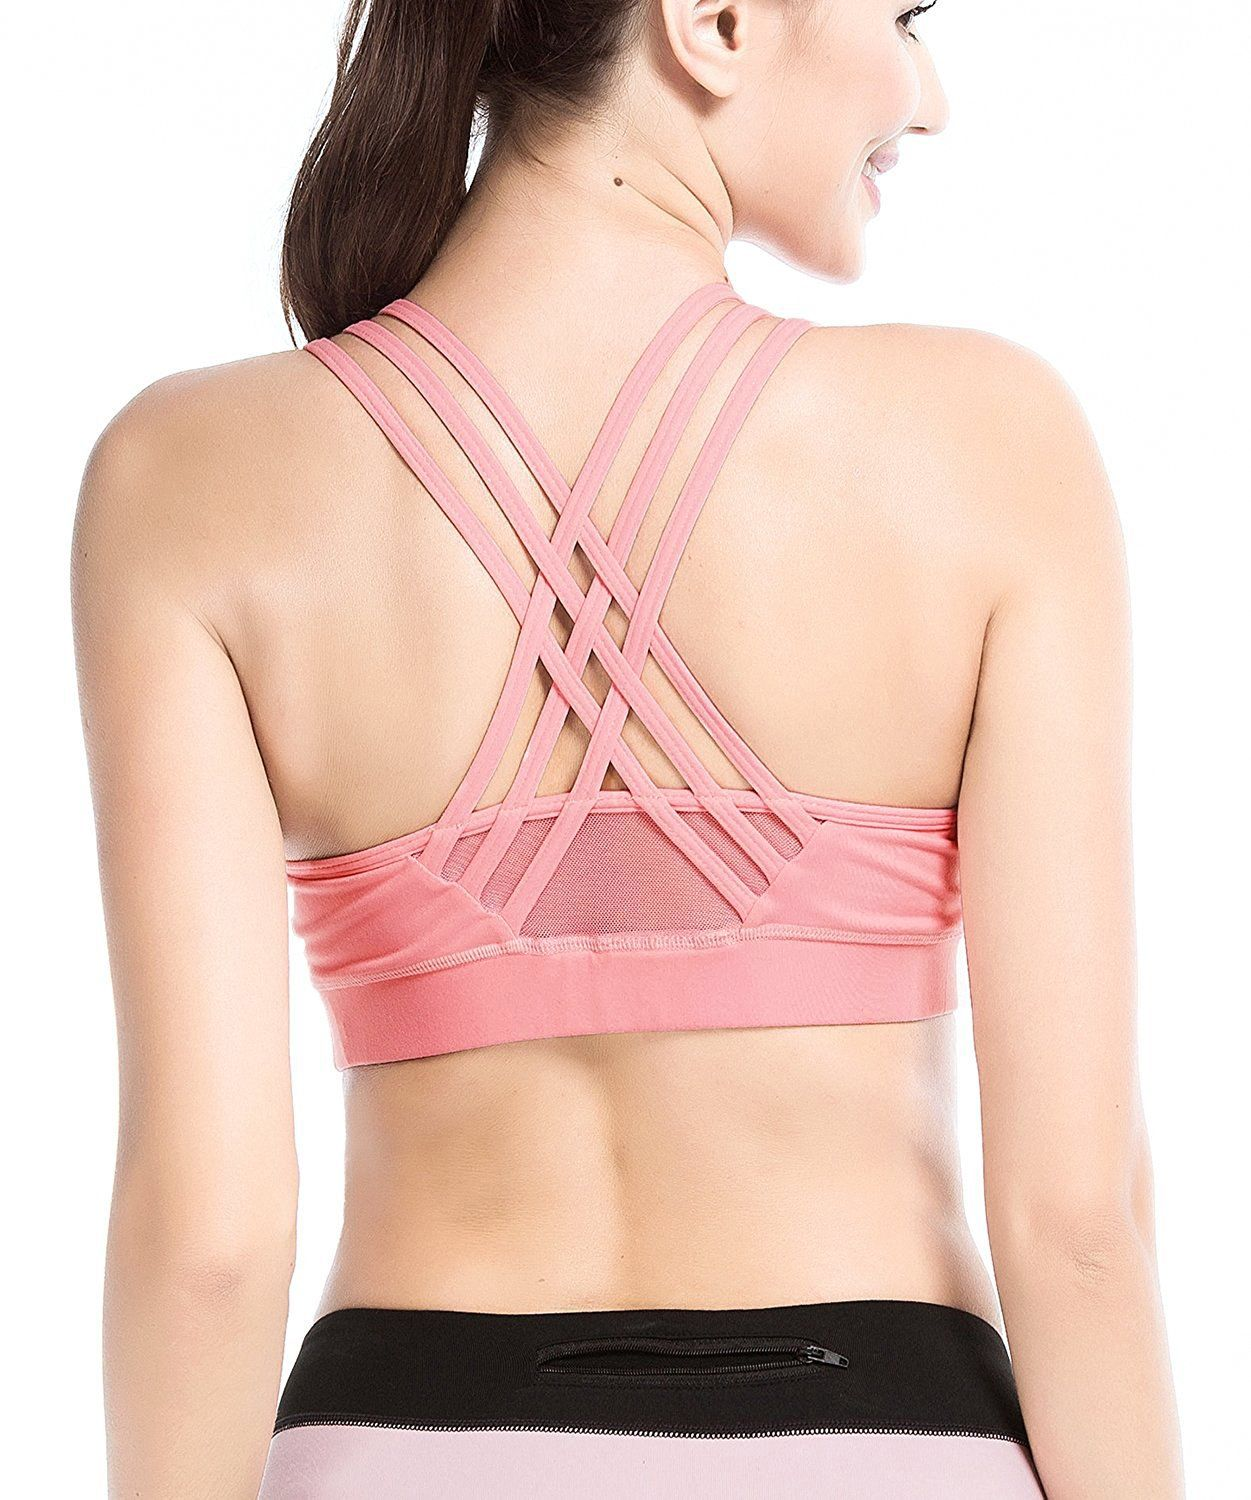 e3c16c69c6b10 YIANNA Womens Sports Bra Padded Medium Support Cross Back Strappy Wirefree  Running Yoga Bra TopsYABRA145PinkS   Want to know more